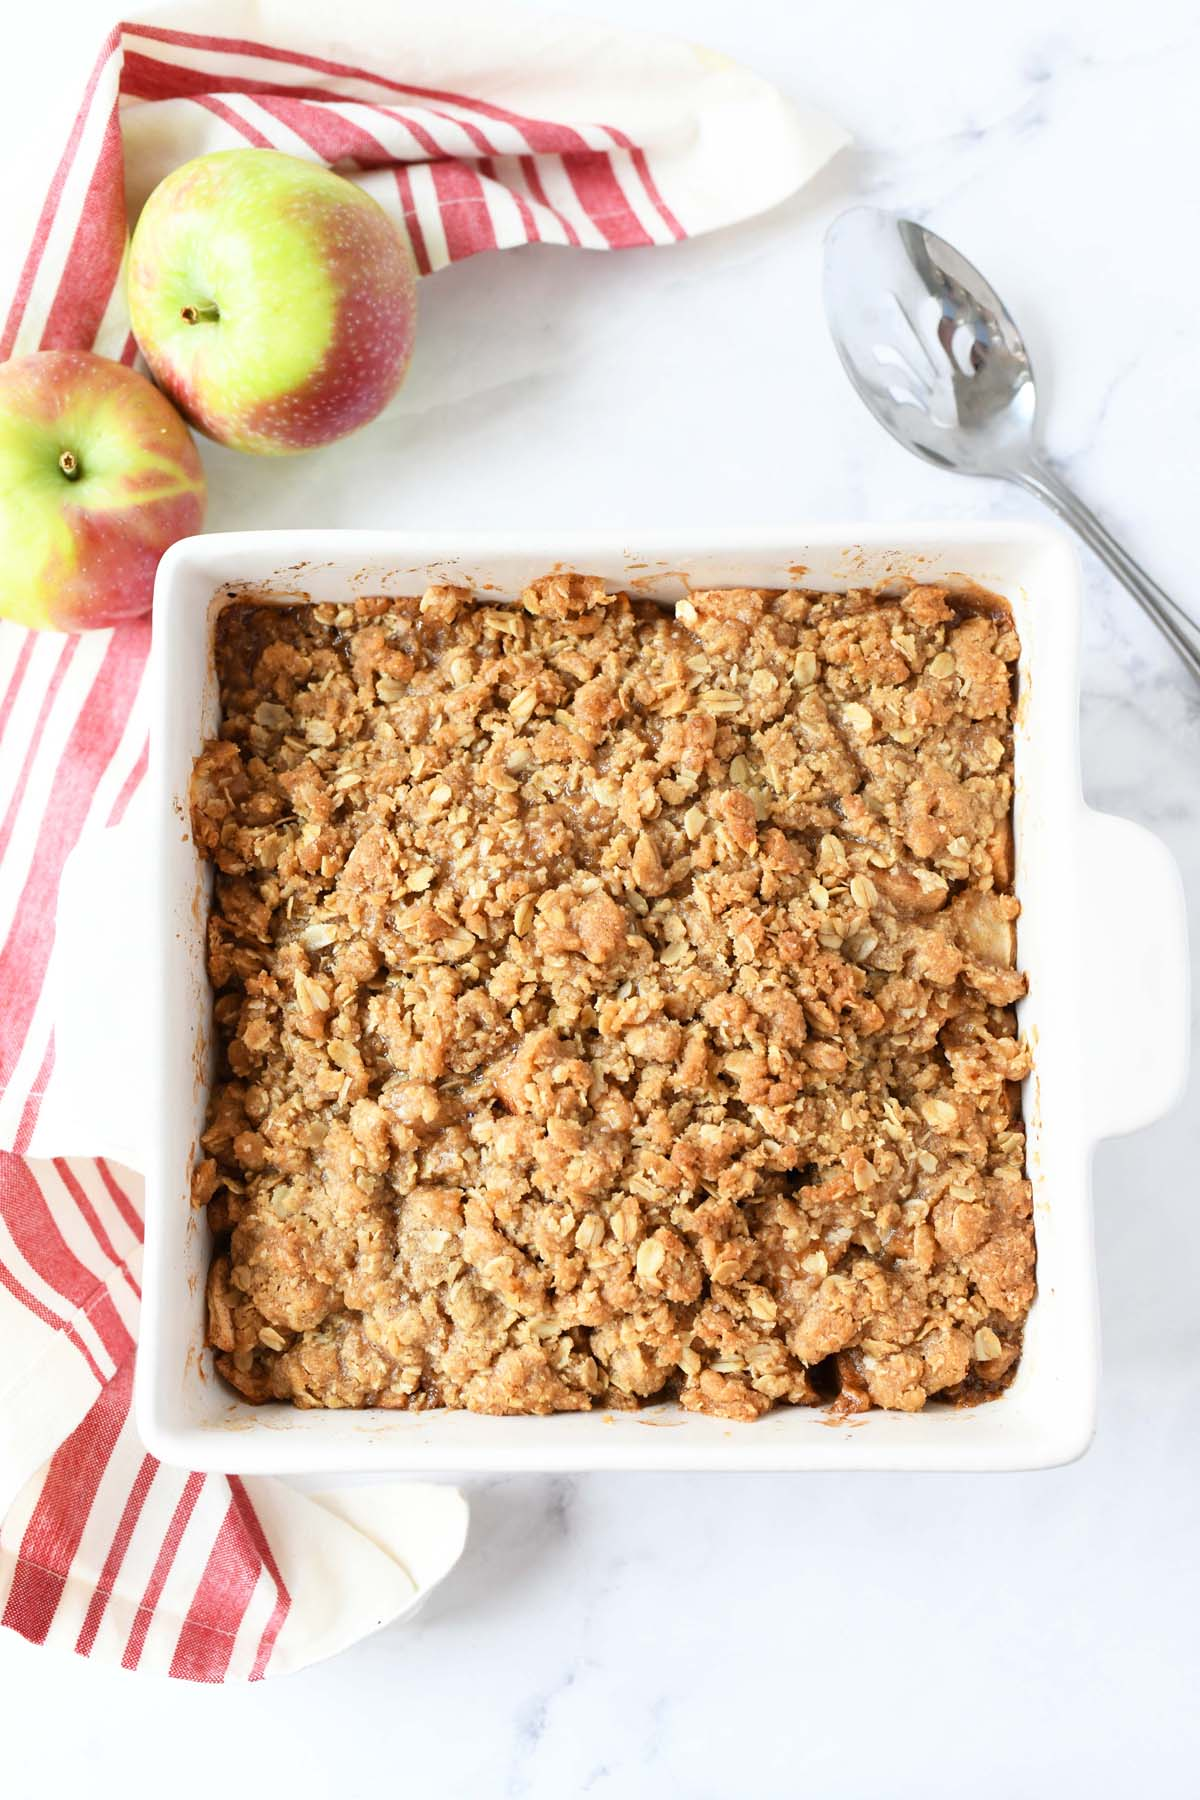 Baked apple crisp in a small white rectangle pan.